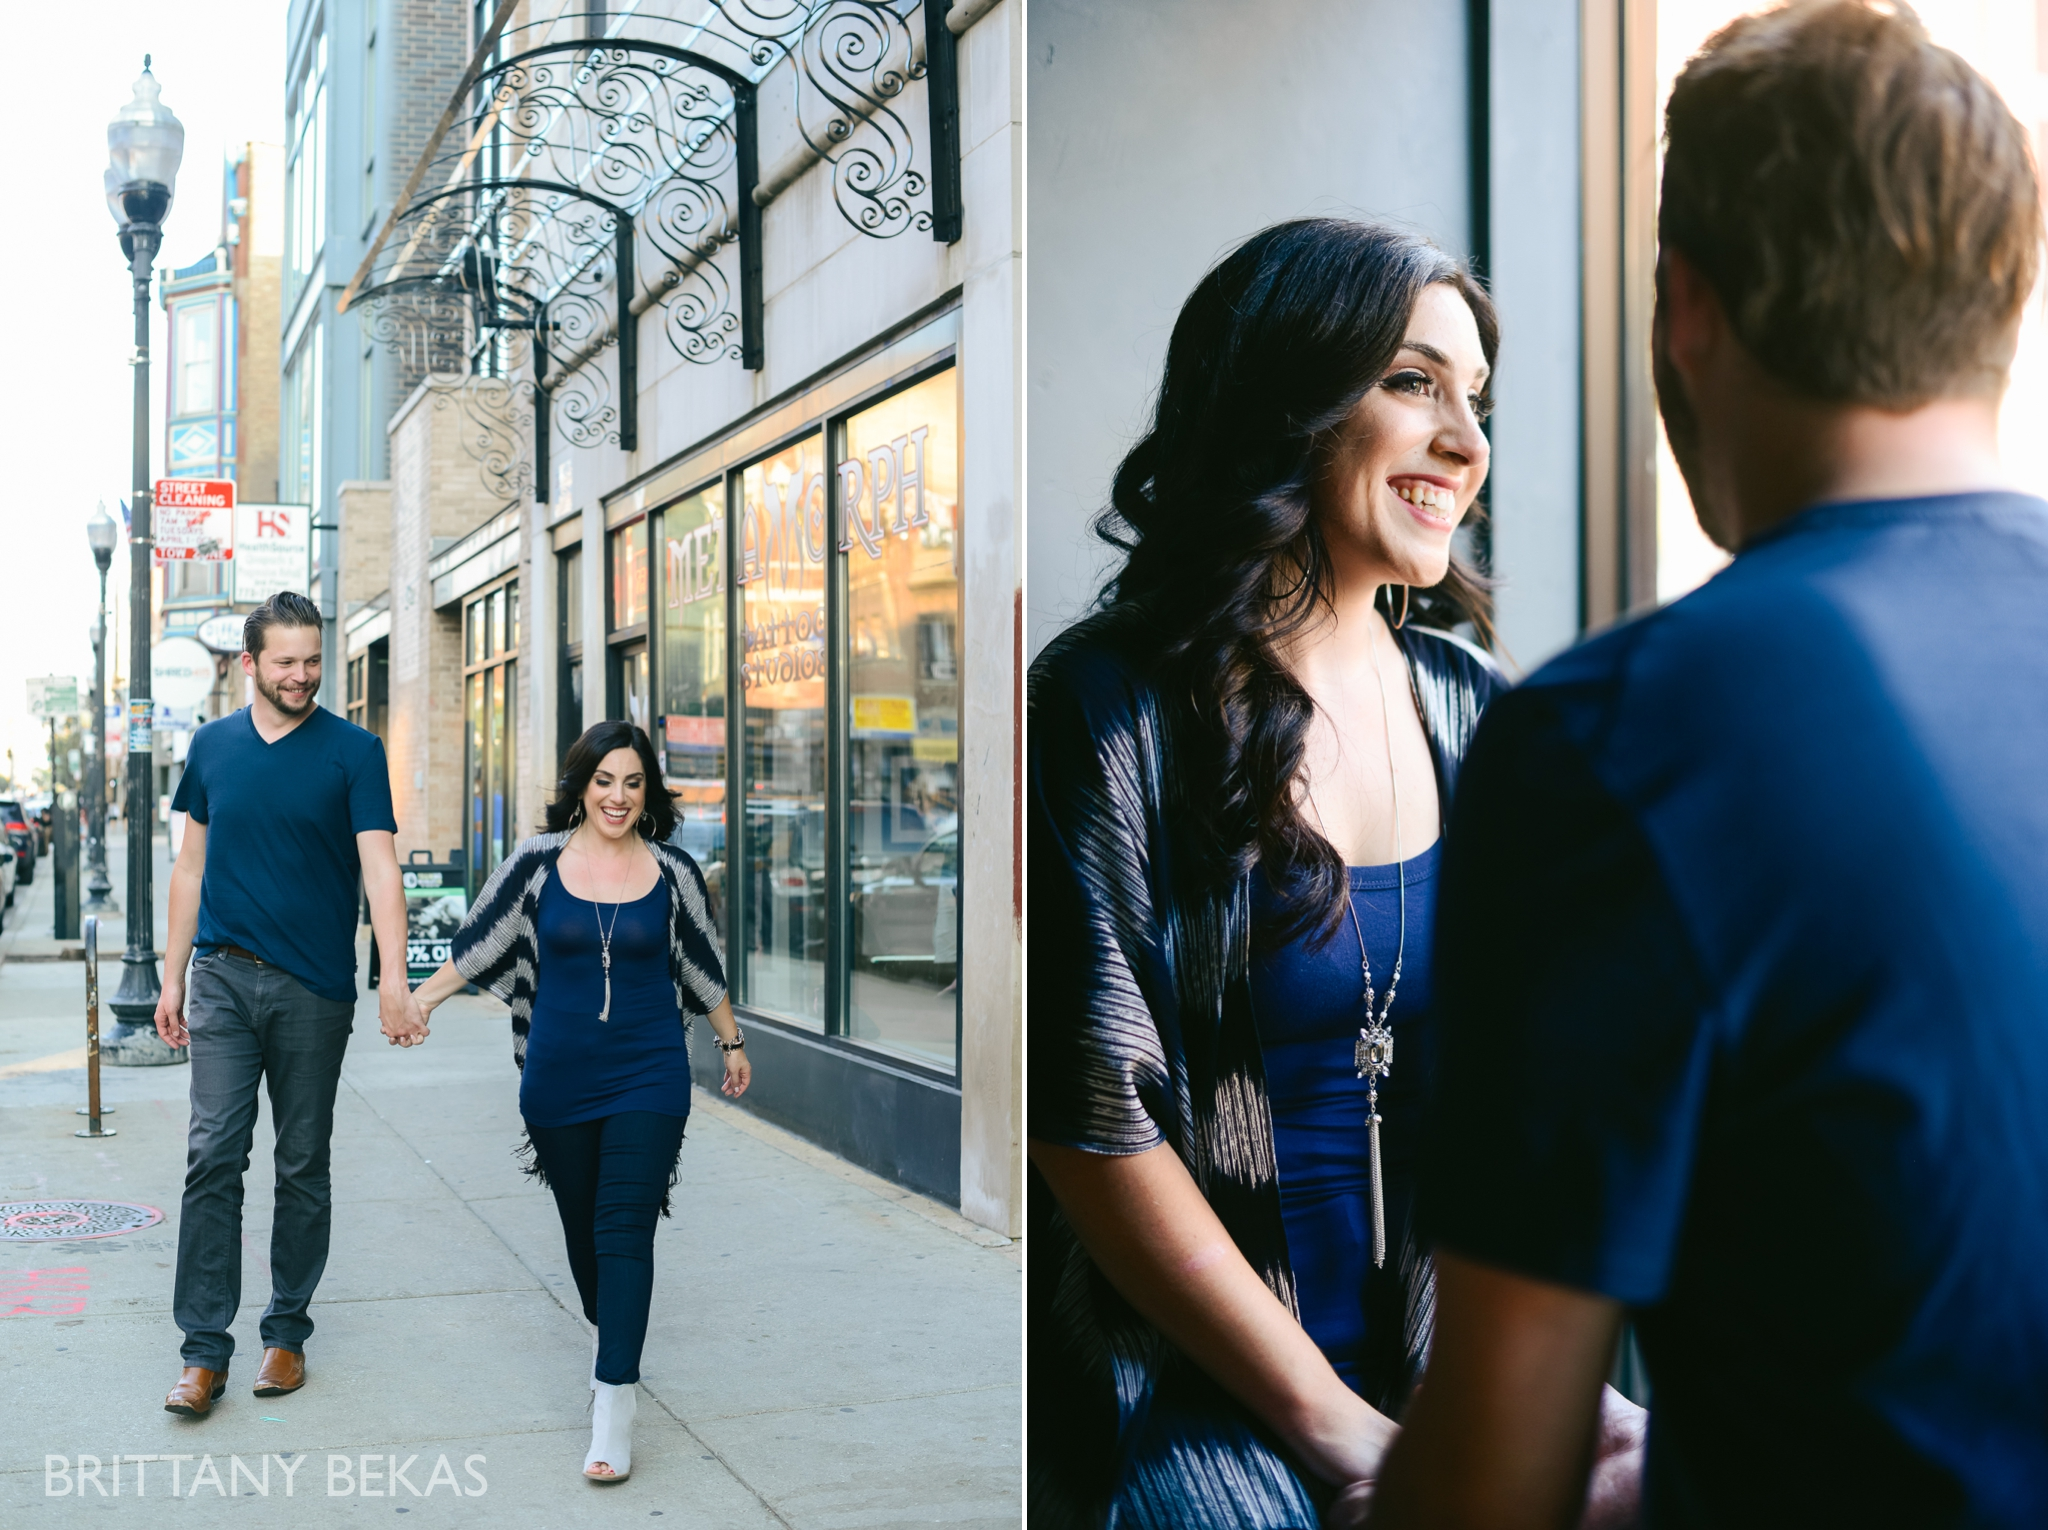 Chicago Riverwalk Engagement Photos - Brittany Bekas Photography_0005